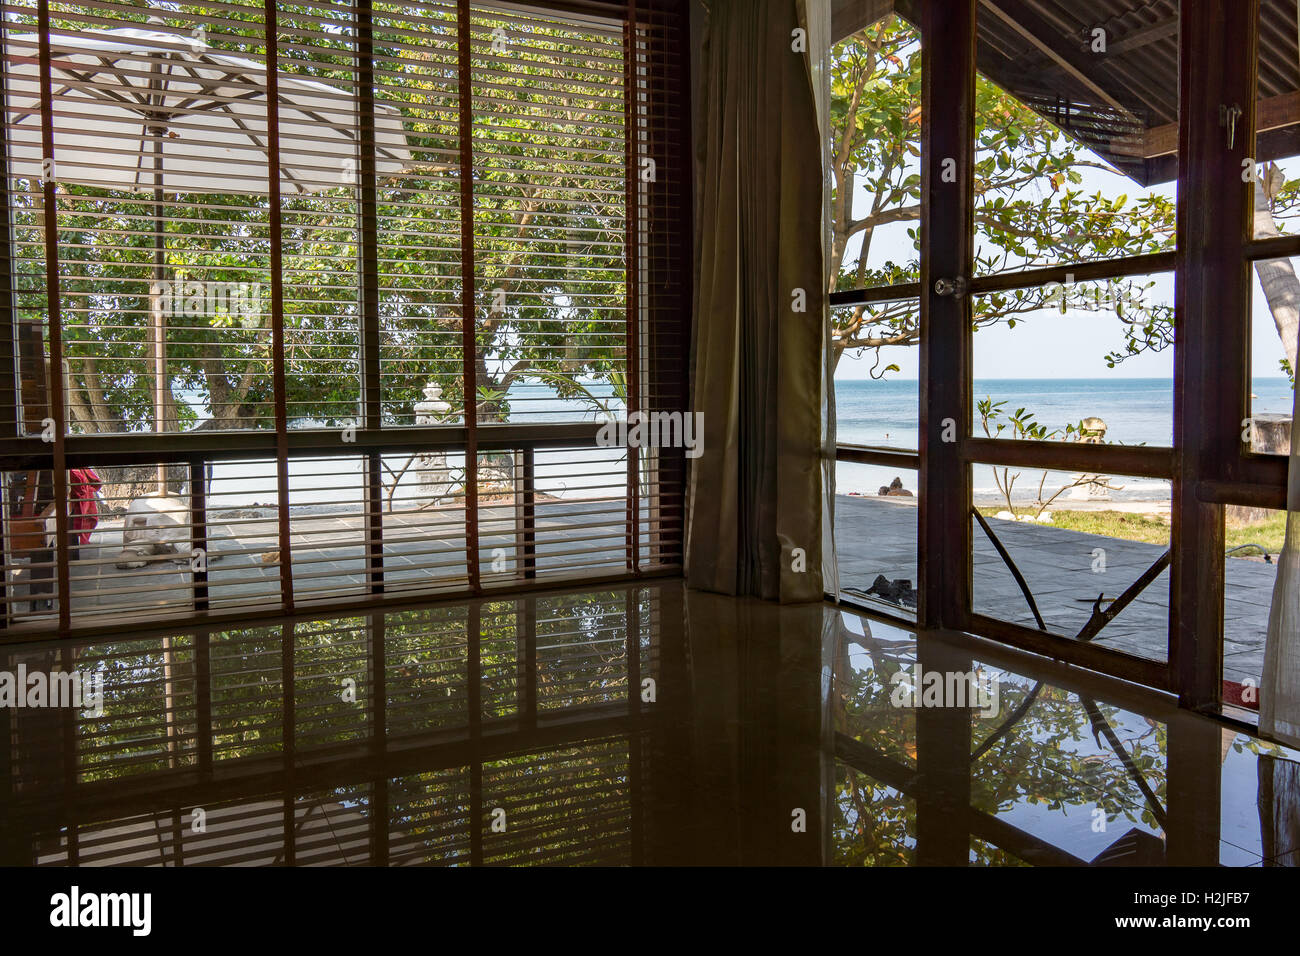 April 13, 2016, Koh Samui, Thailand, Outlook from hotel room at Crystal Bay Yacht Club - Stock Image